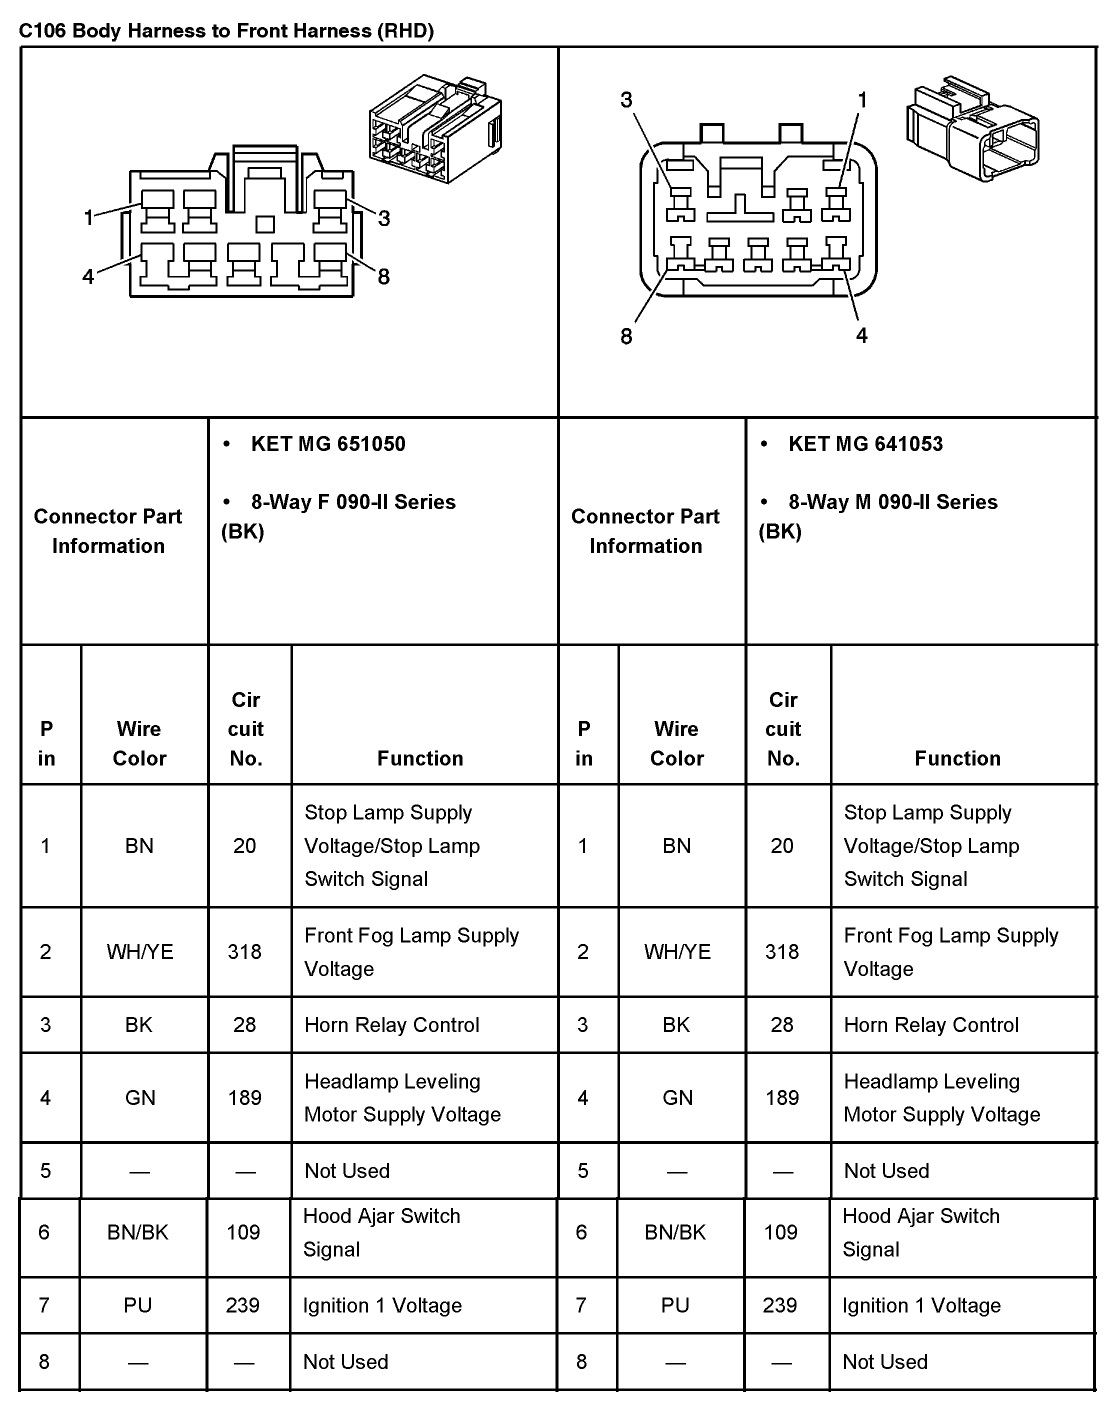 Chevy Aveo Fuse Box Splicer Wiring Diagram Schematics 2009 Aveo Hatchback  2009 Aveo Fuse Box